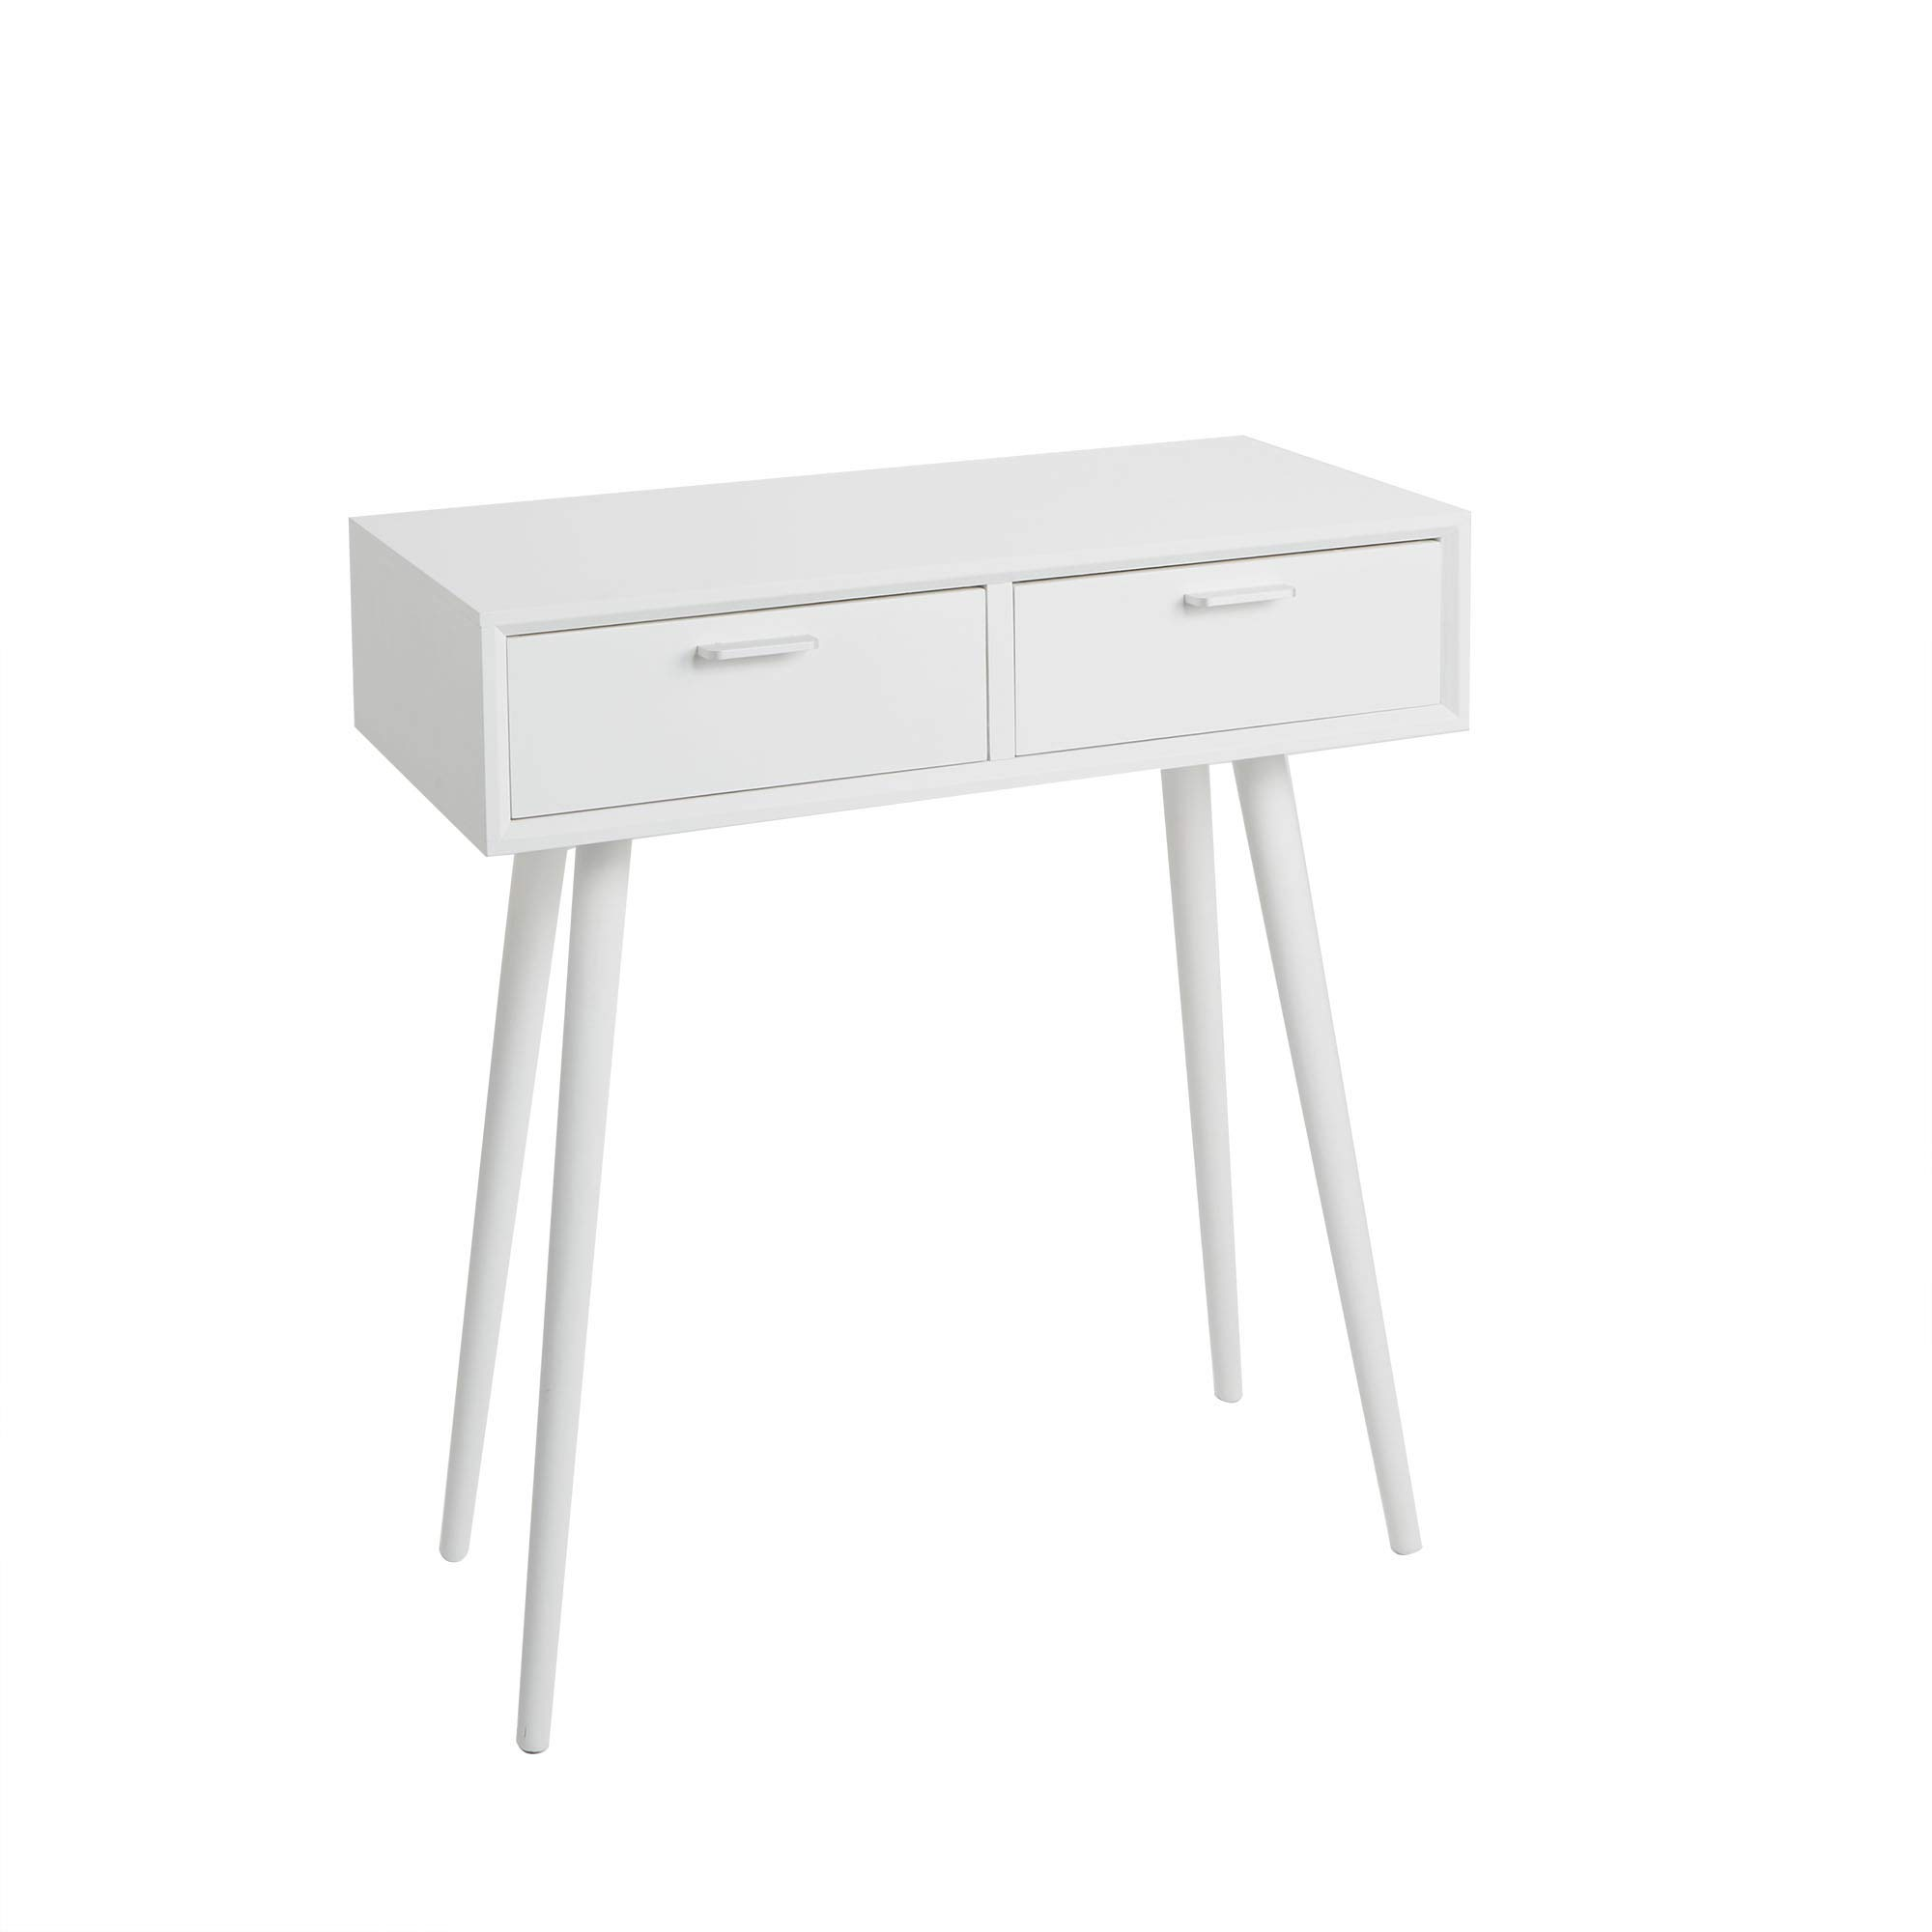 Silverwood Console Table, White by Silverwood